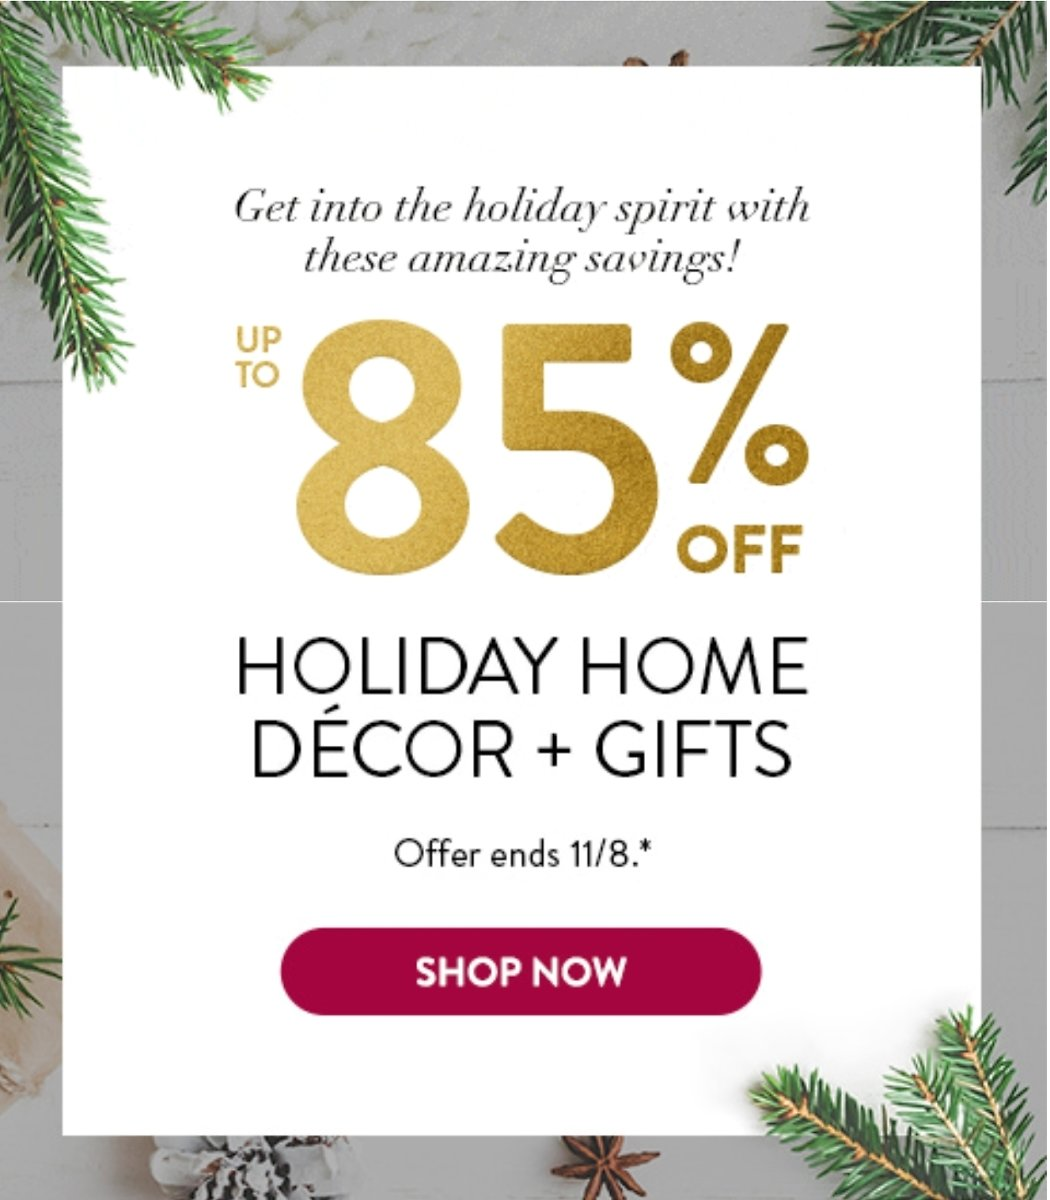 Up To 85% Off Holiday Home Decor + Gifts